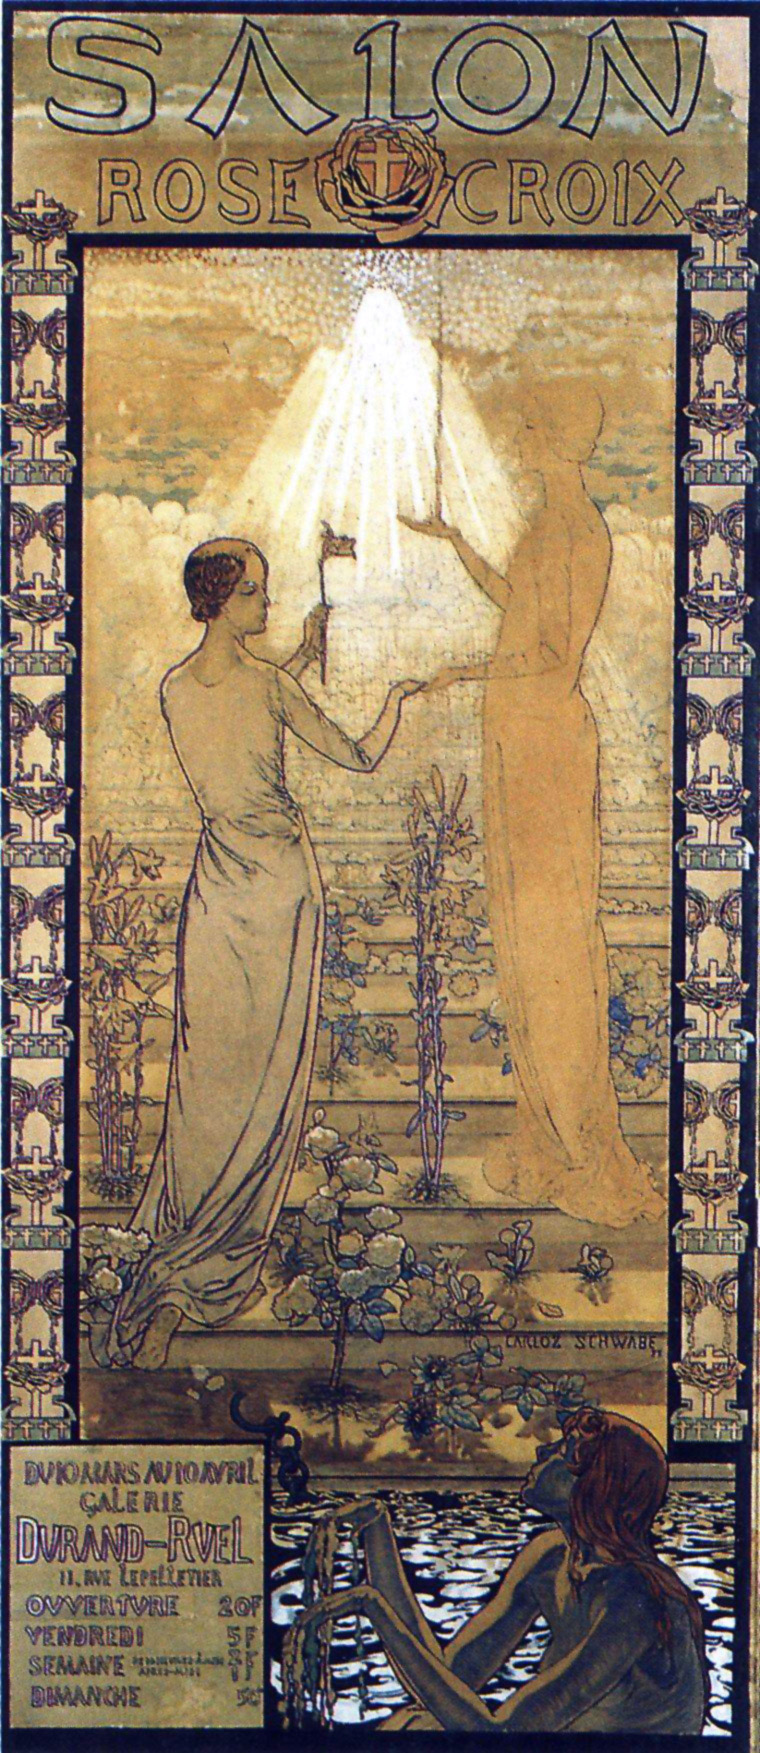 Poster for the first Rose+Croix Salon, 1892, designed by Carlos Schwabe.